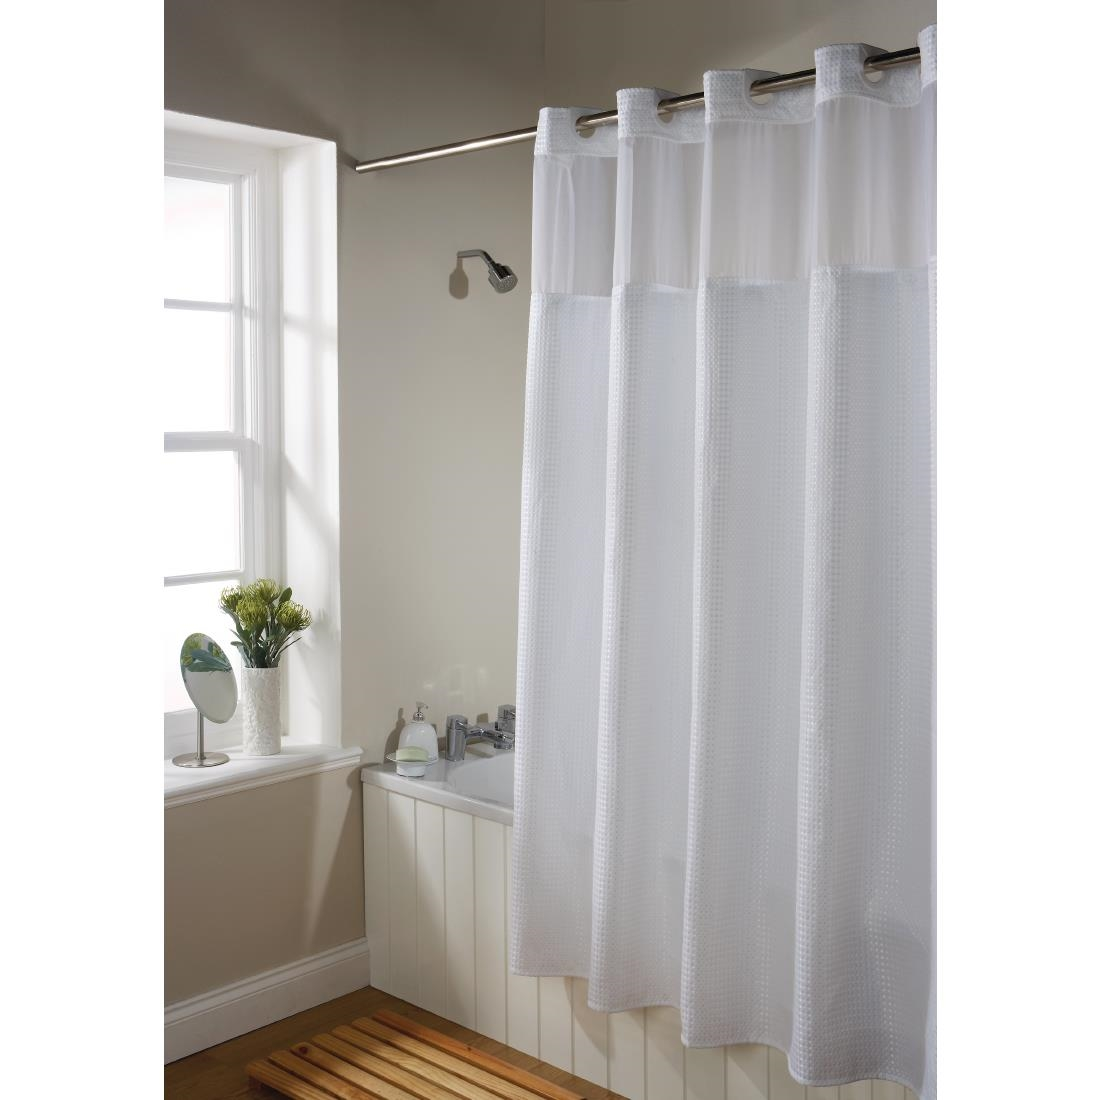 Mitre Luxury Waffle Shower Curtain